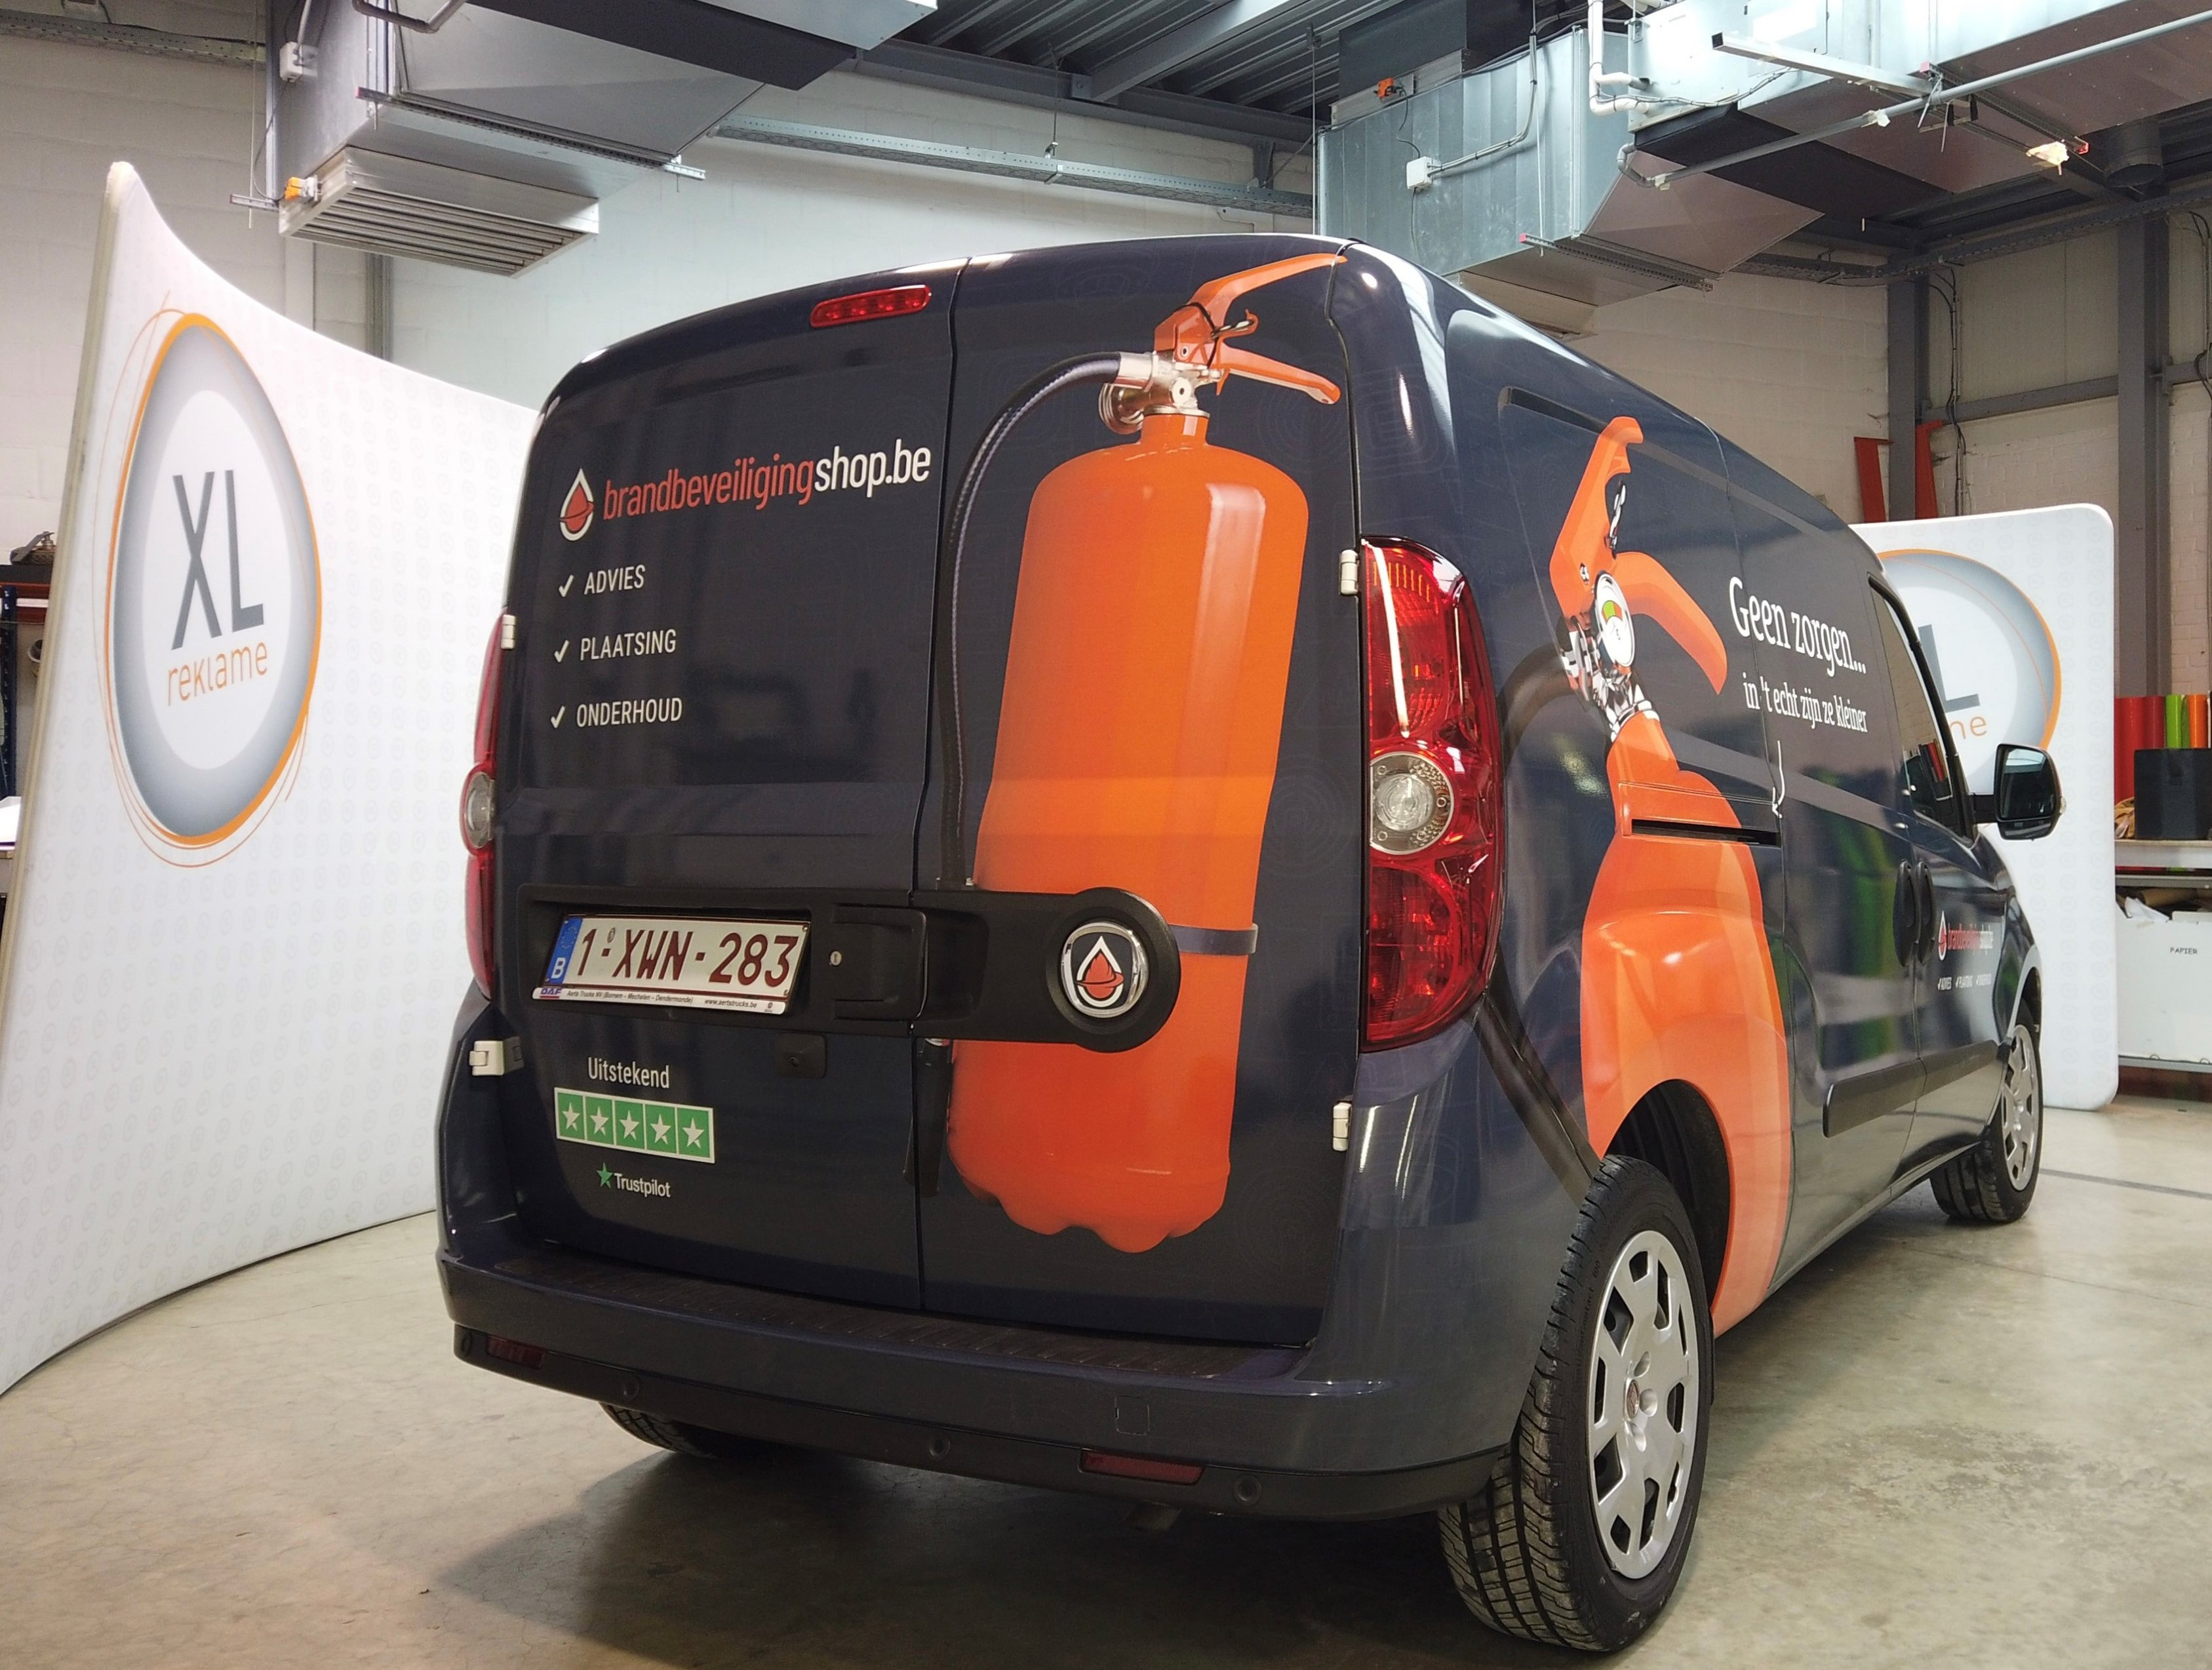 Full wrap Online Fire Protection Group